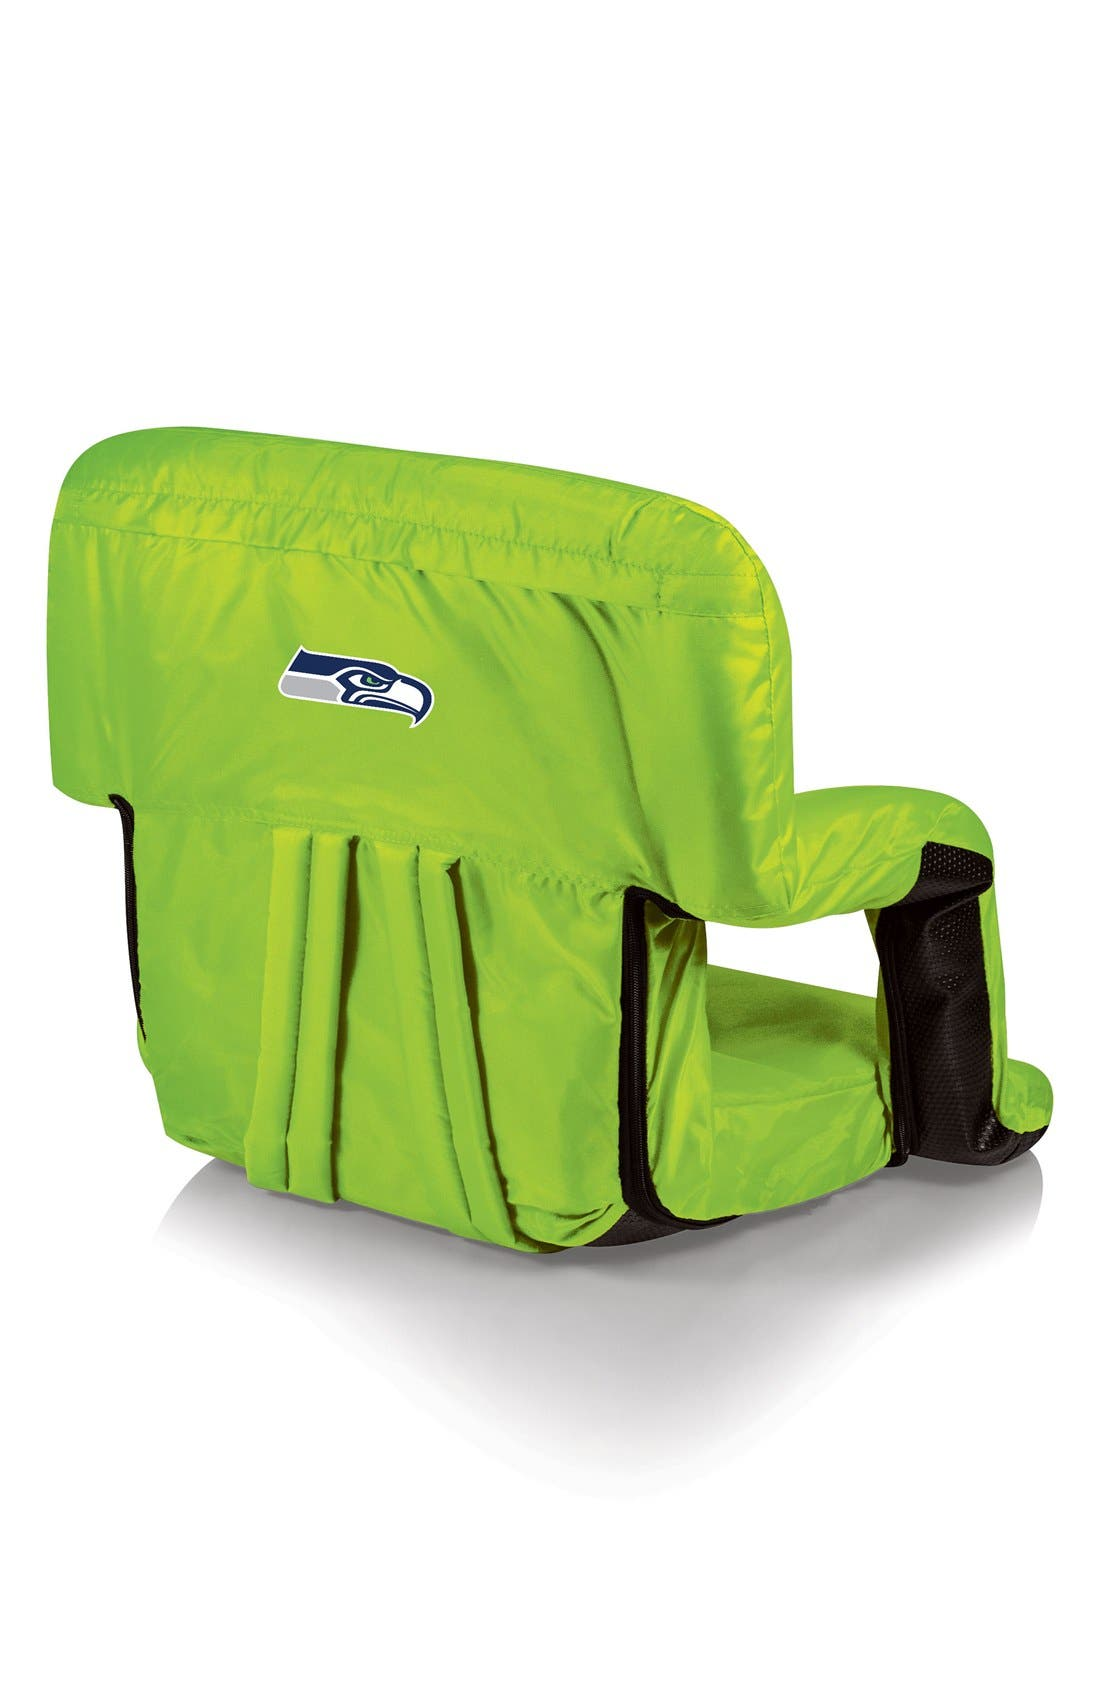 'Ventura' Football Print Stadium Seat,                             Main thumbnail 1, color,                             Seattle Seahawks - Lime